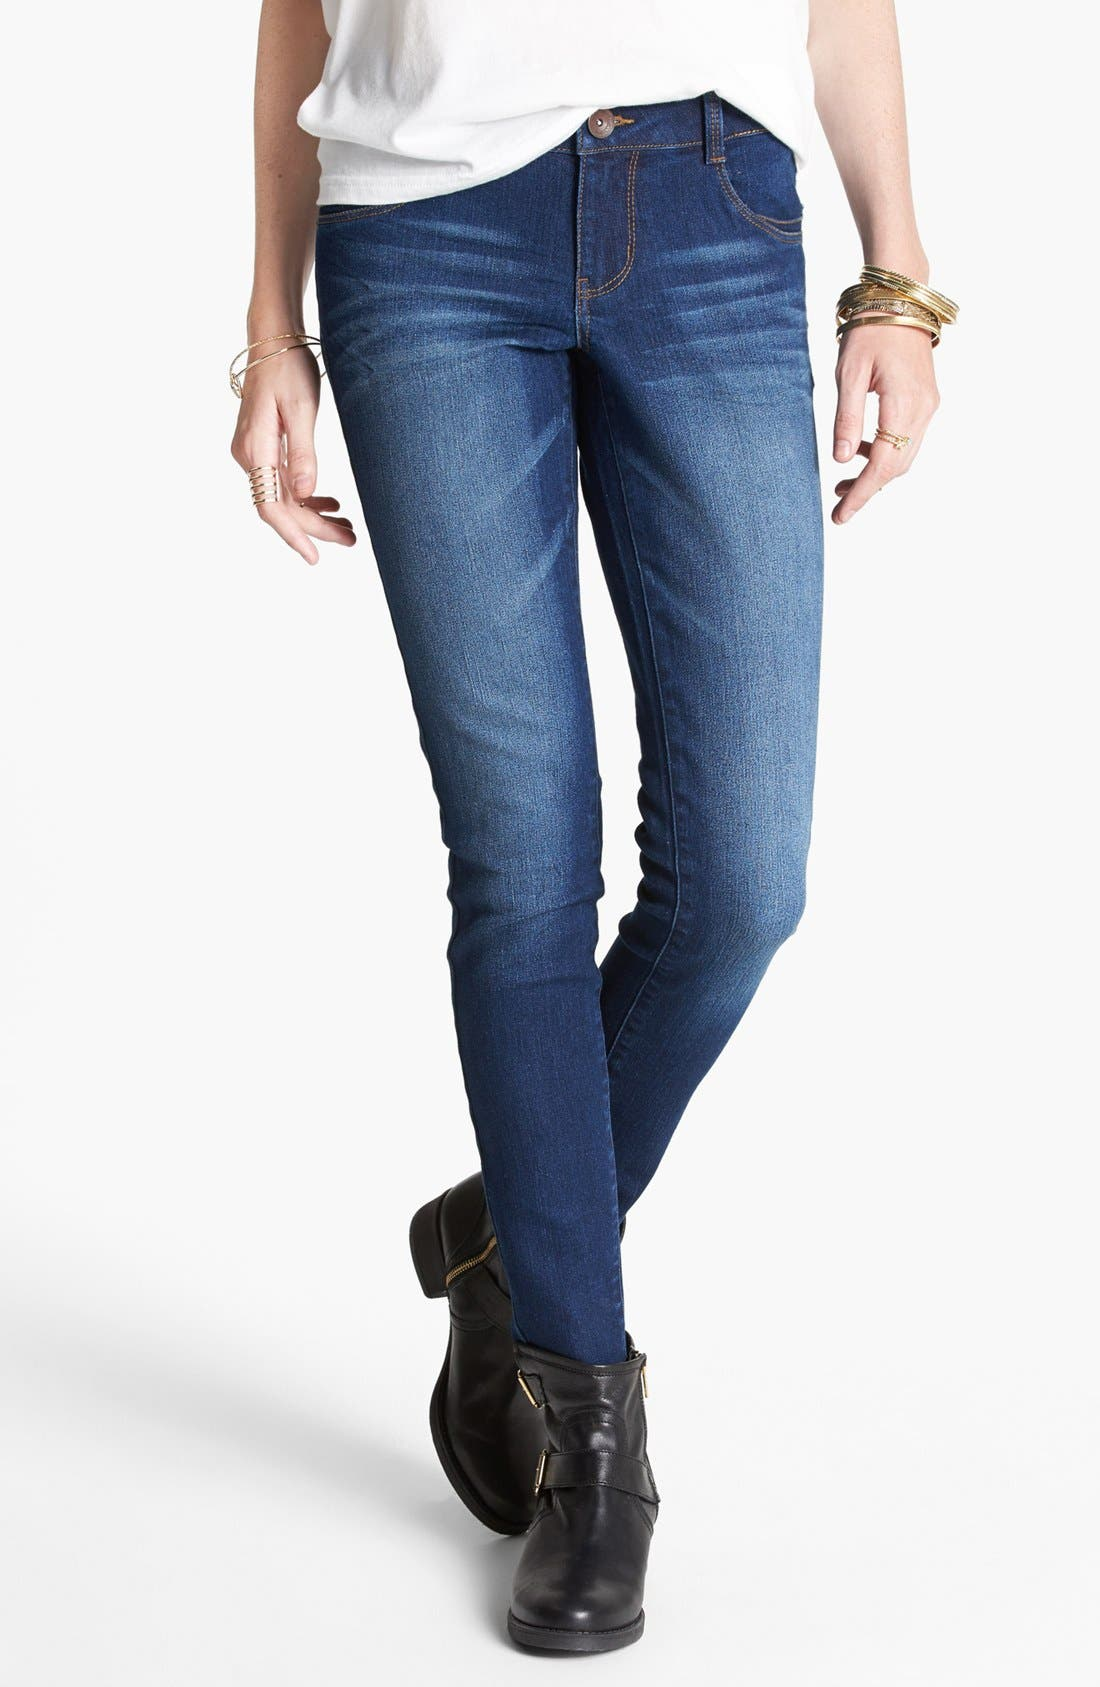 Alternate Image 1 Selected - Jolt Faded Skinny Jeans (Dark) (Juniors) (Online Only)